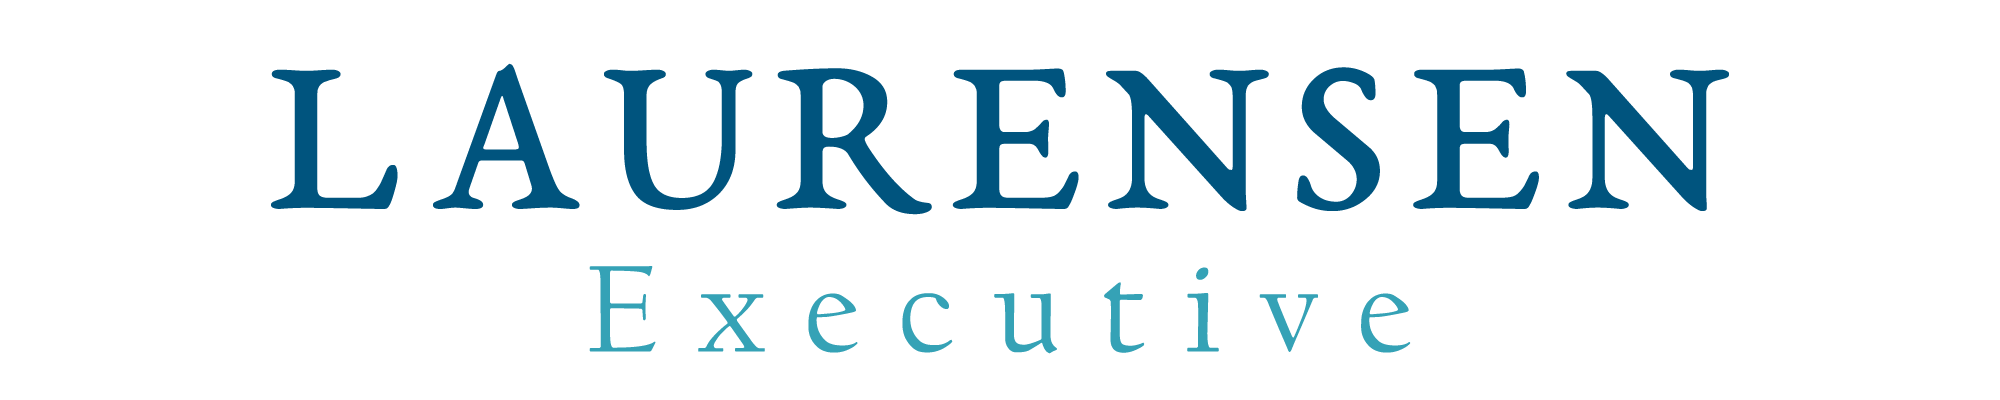 Laurensen Executive